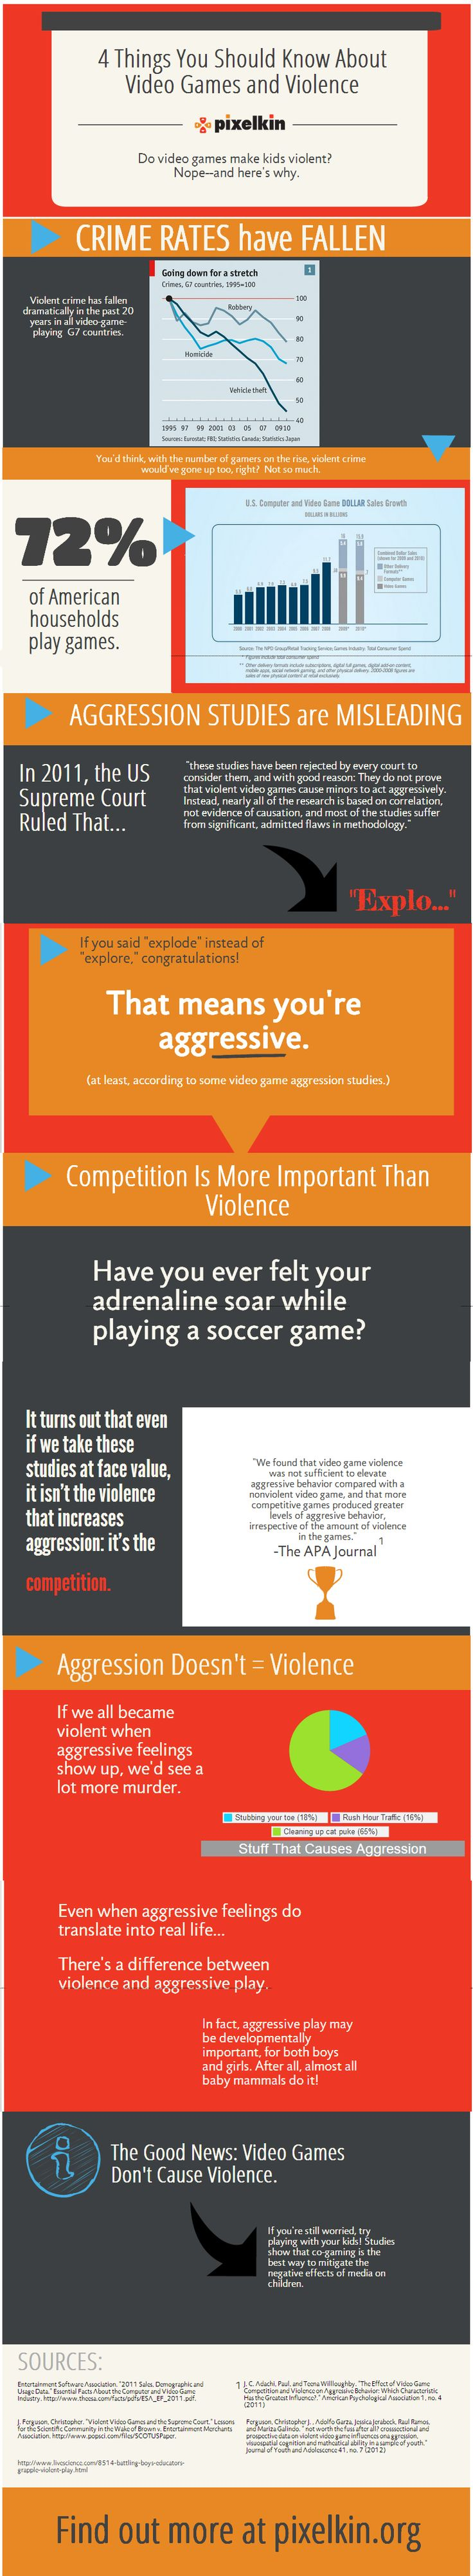 violence in media and video games should be restricted Studies suggest that when violence is rewarded in video games, players exhibit increased aggressive behavior compared to players of video games where violence is punished the reward structure is one distinguishing factor between violent video games and other violent media such as movies and television shows, which do not reward viewers nor .